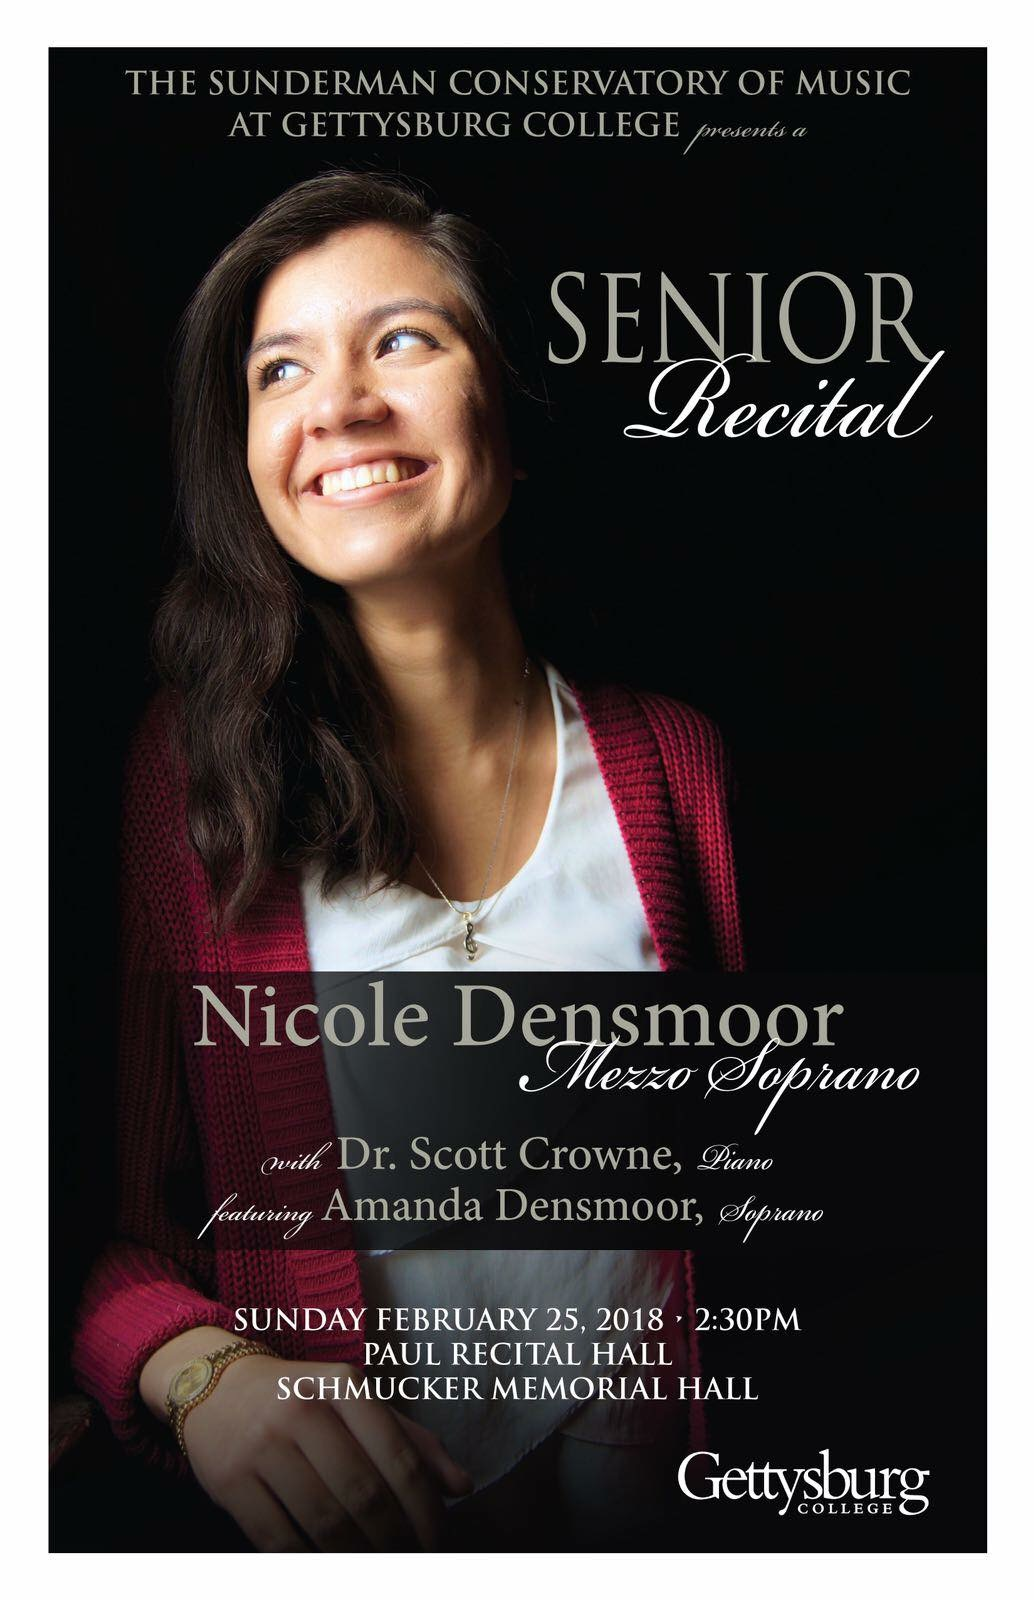 Recital poster for Nicole Densmoor's senior recital in the Sunderman Conservatory of Music (Photo provided)